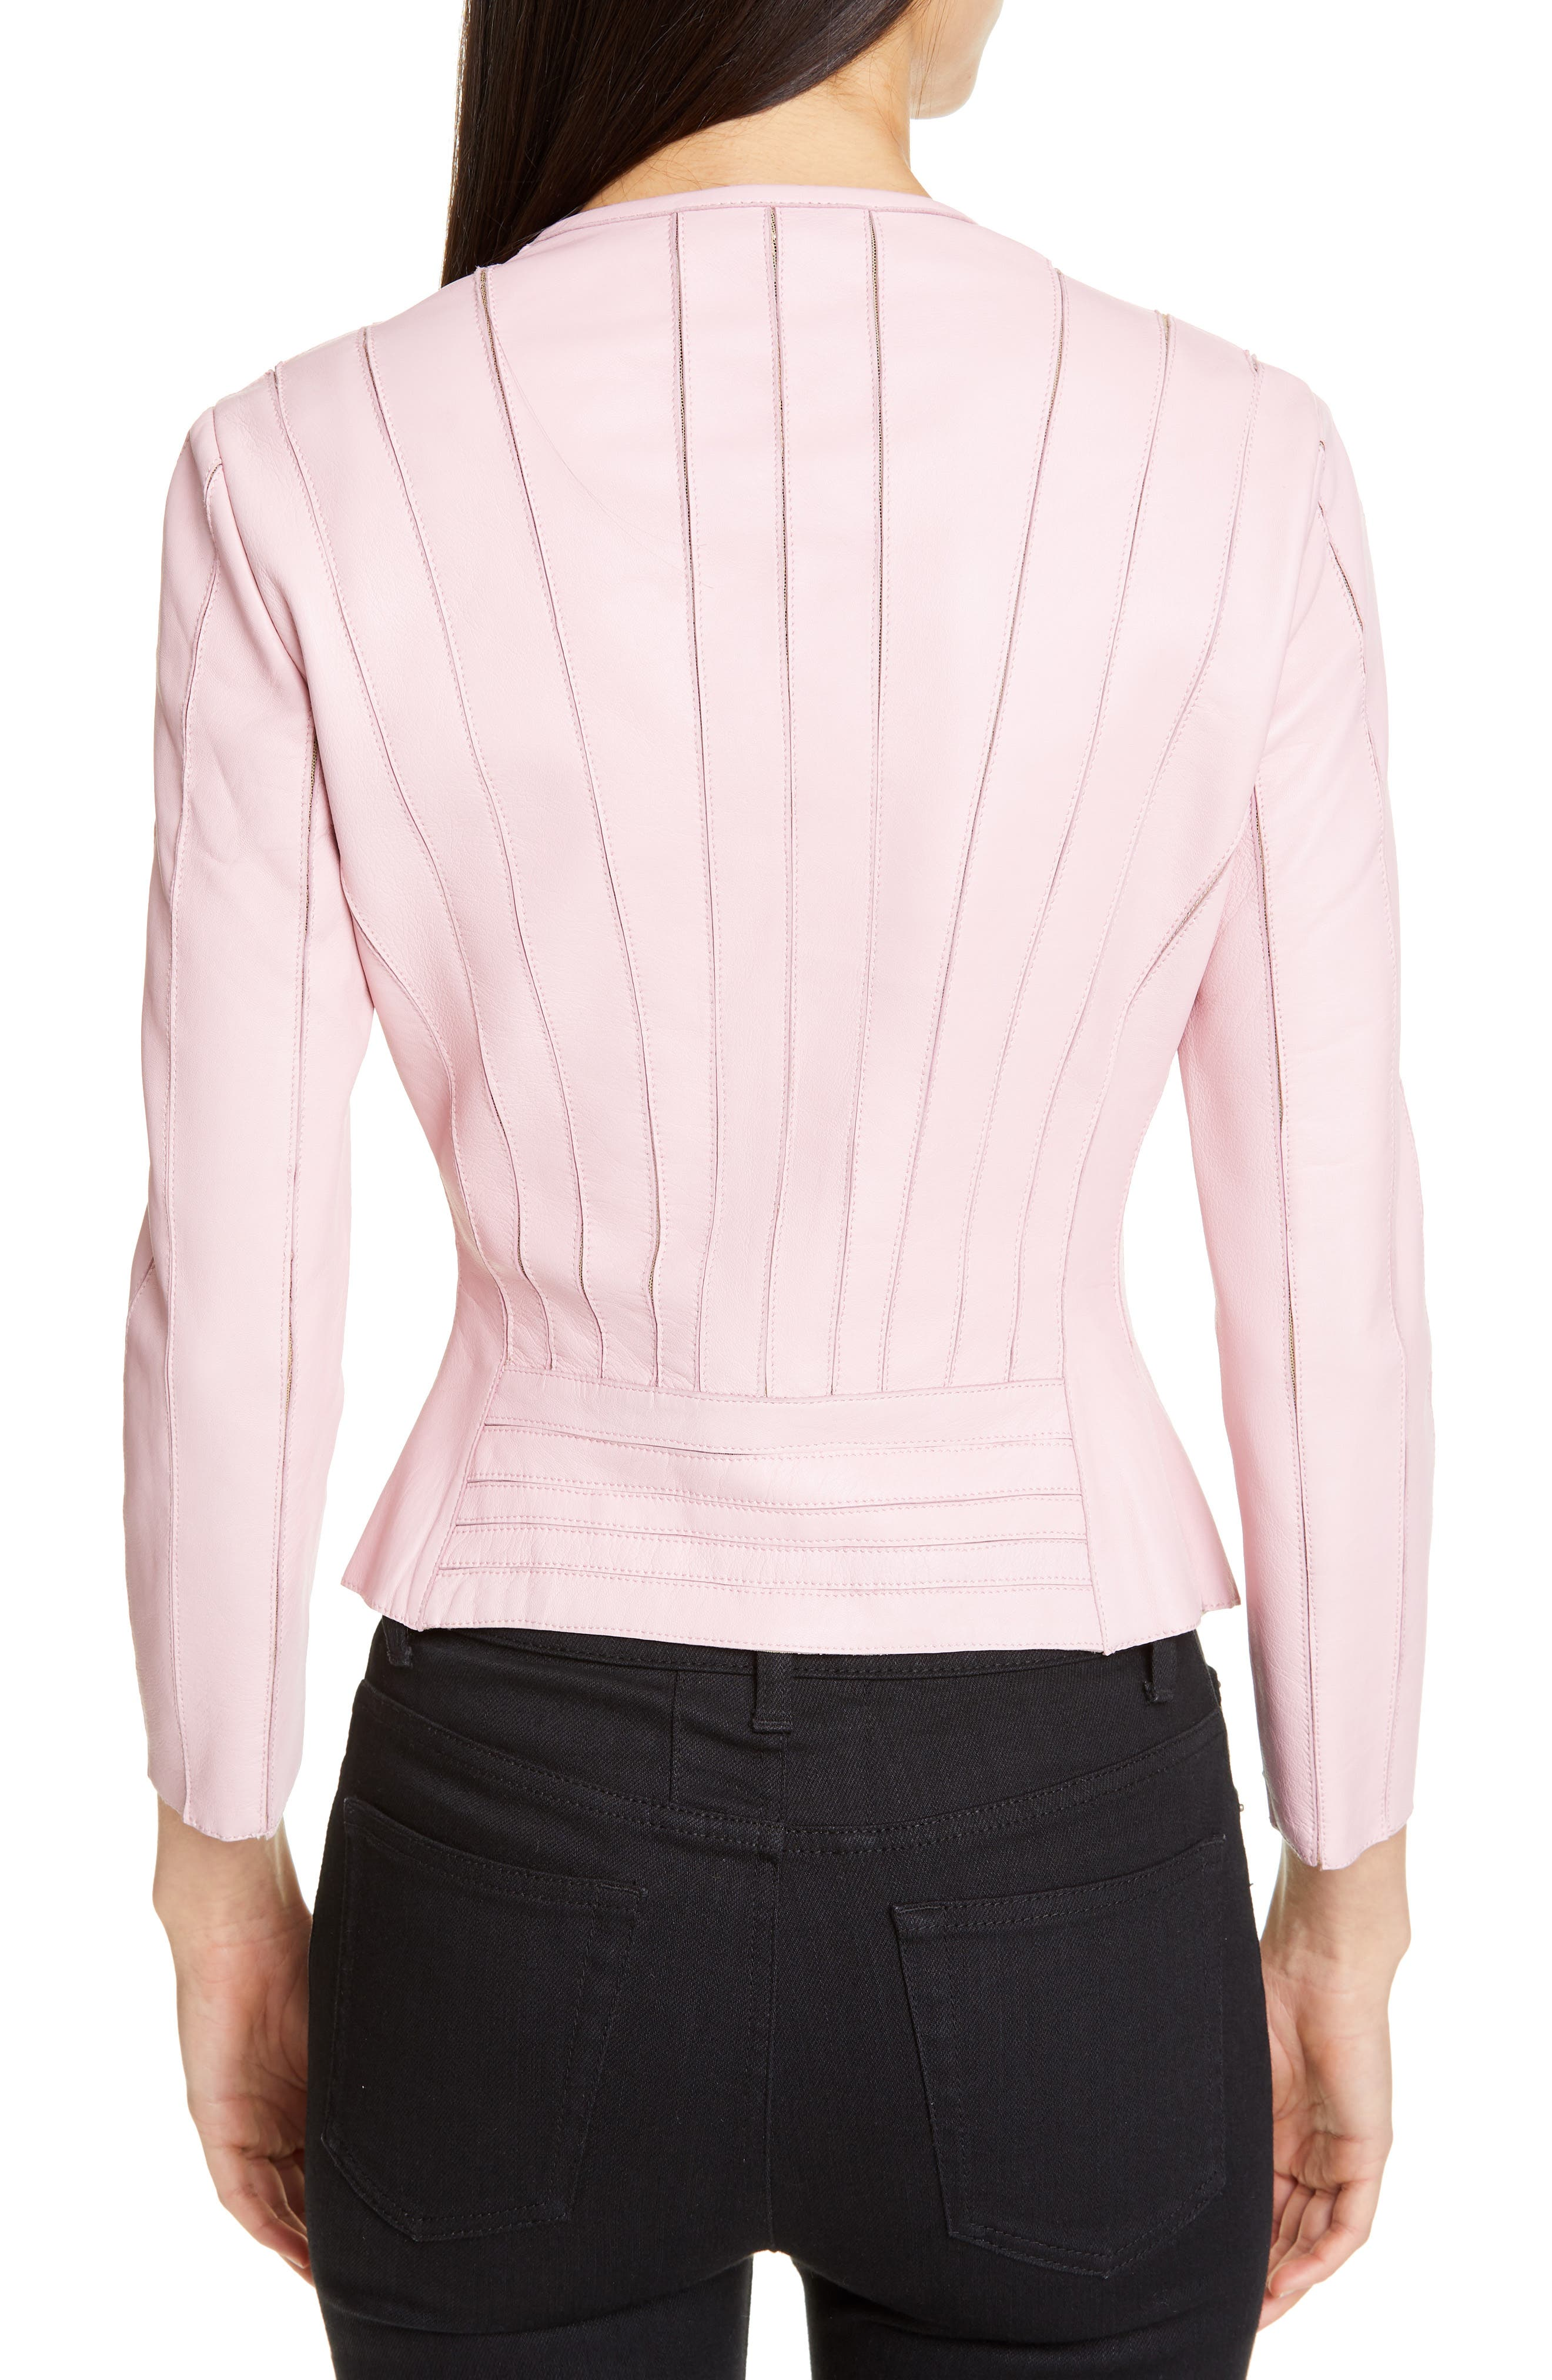 VERSACE COLLECTION, Mesh Rib Leather Jacket, Alternate thumbnail 2, color, PASTEL ROSE